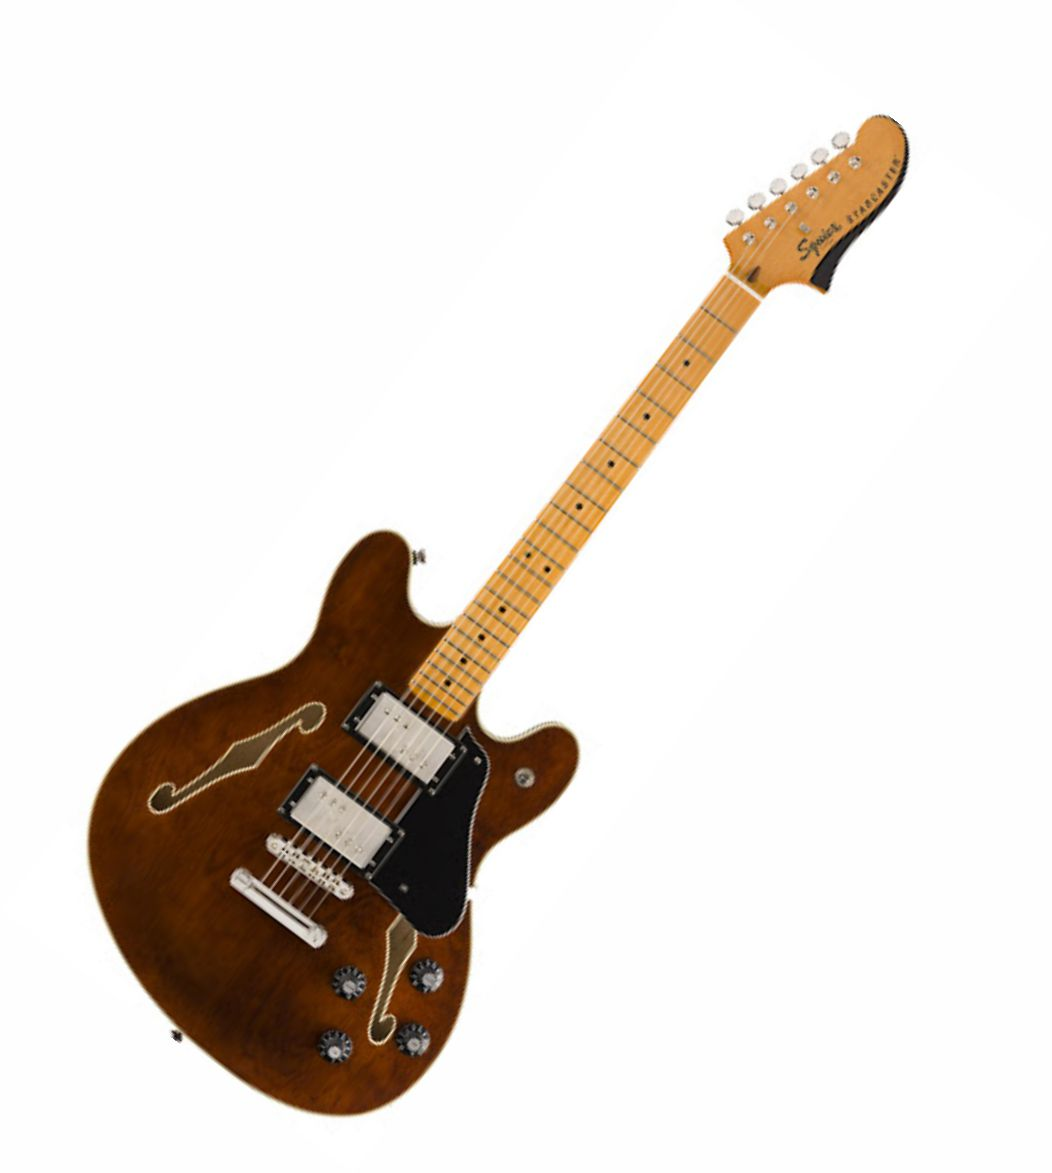 Guitarra Fender Squier Starcaster CLASSIC VIBE 70S STARCASTER MN - 592 - WALNUT